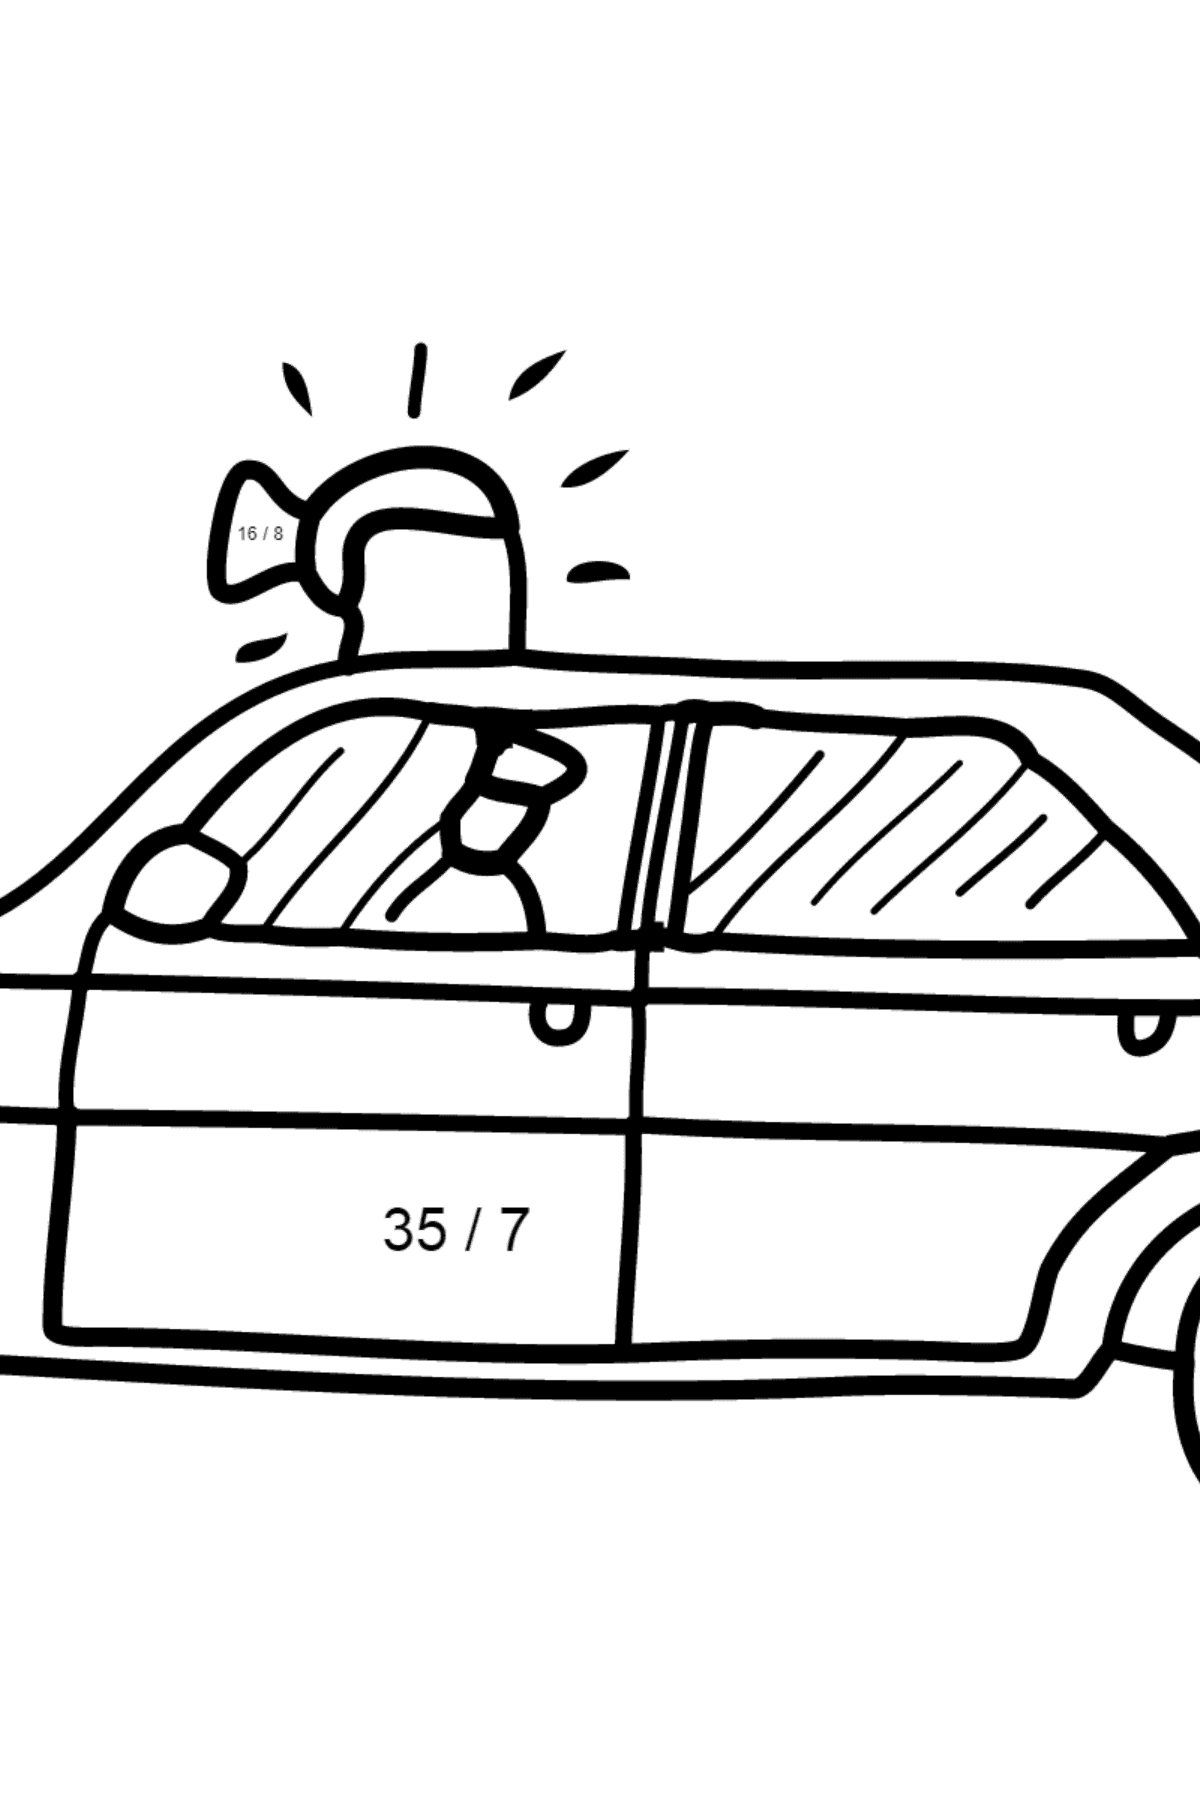 Coloring Page - A Police Car for Kids  - Color by Number Division